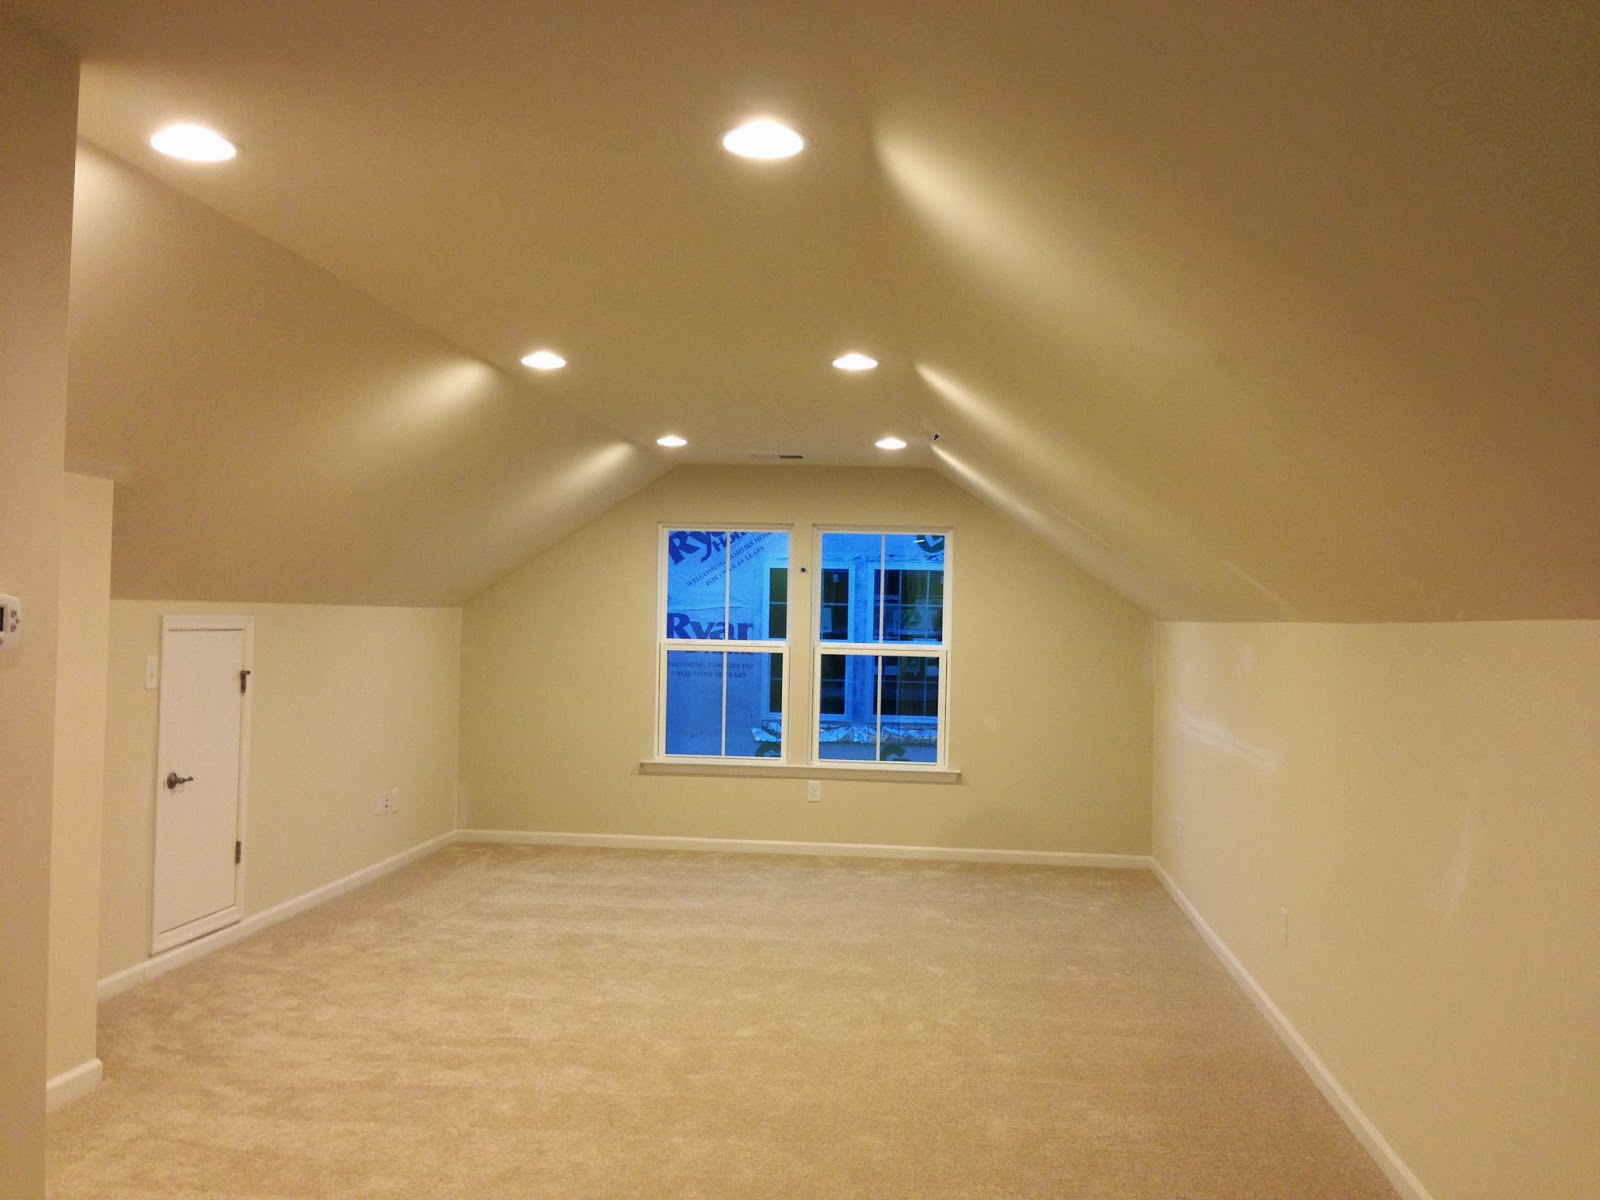 finished room over garage ideas - Our Venice Home at Culpepper Landing